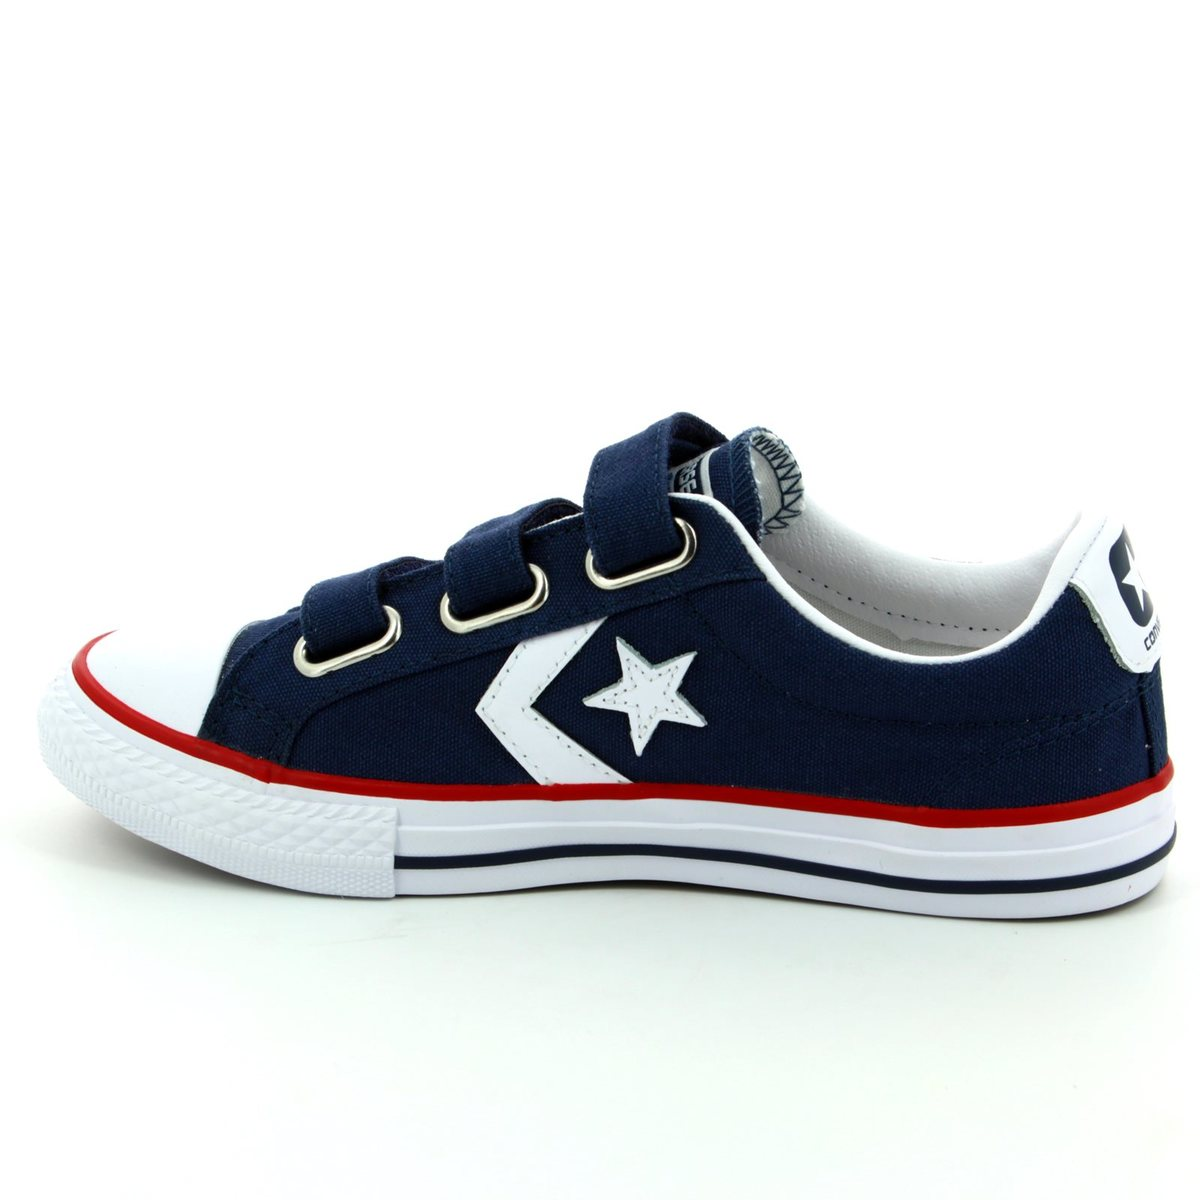 Converse Trainers - Navy - 315467 412 Star Player 3V OX Velcro 65b5e6f27